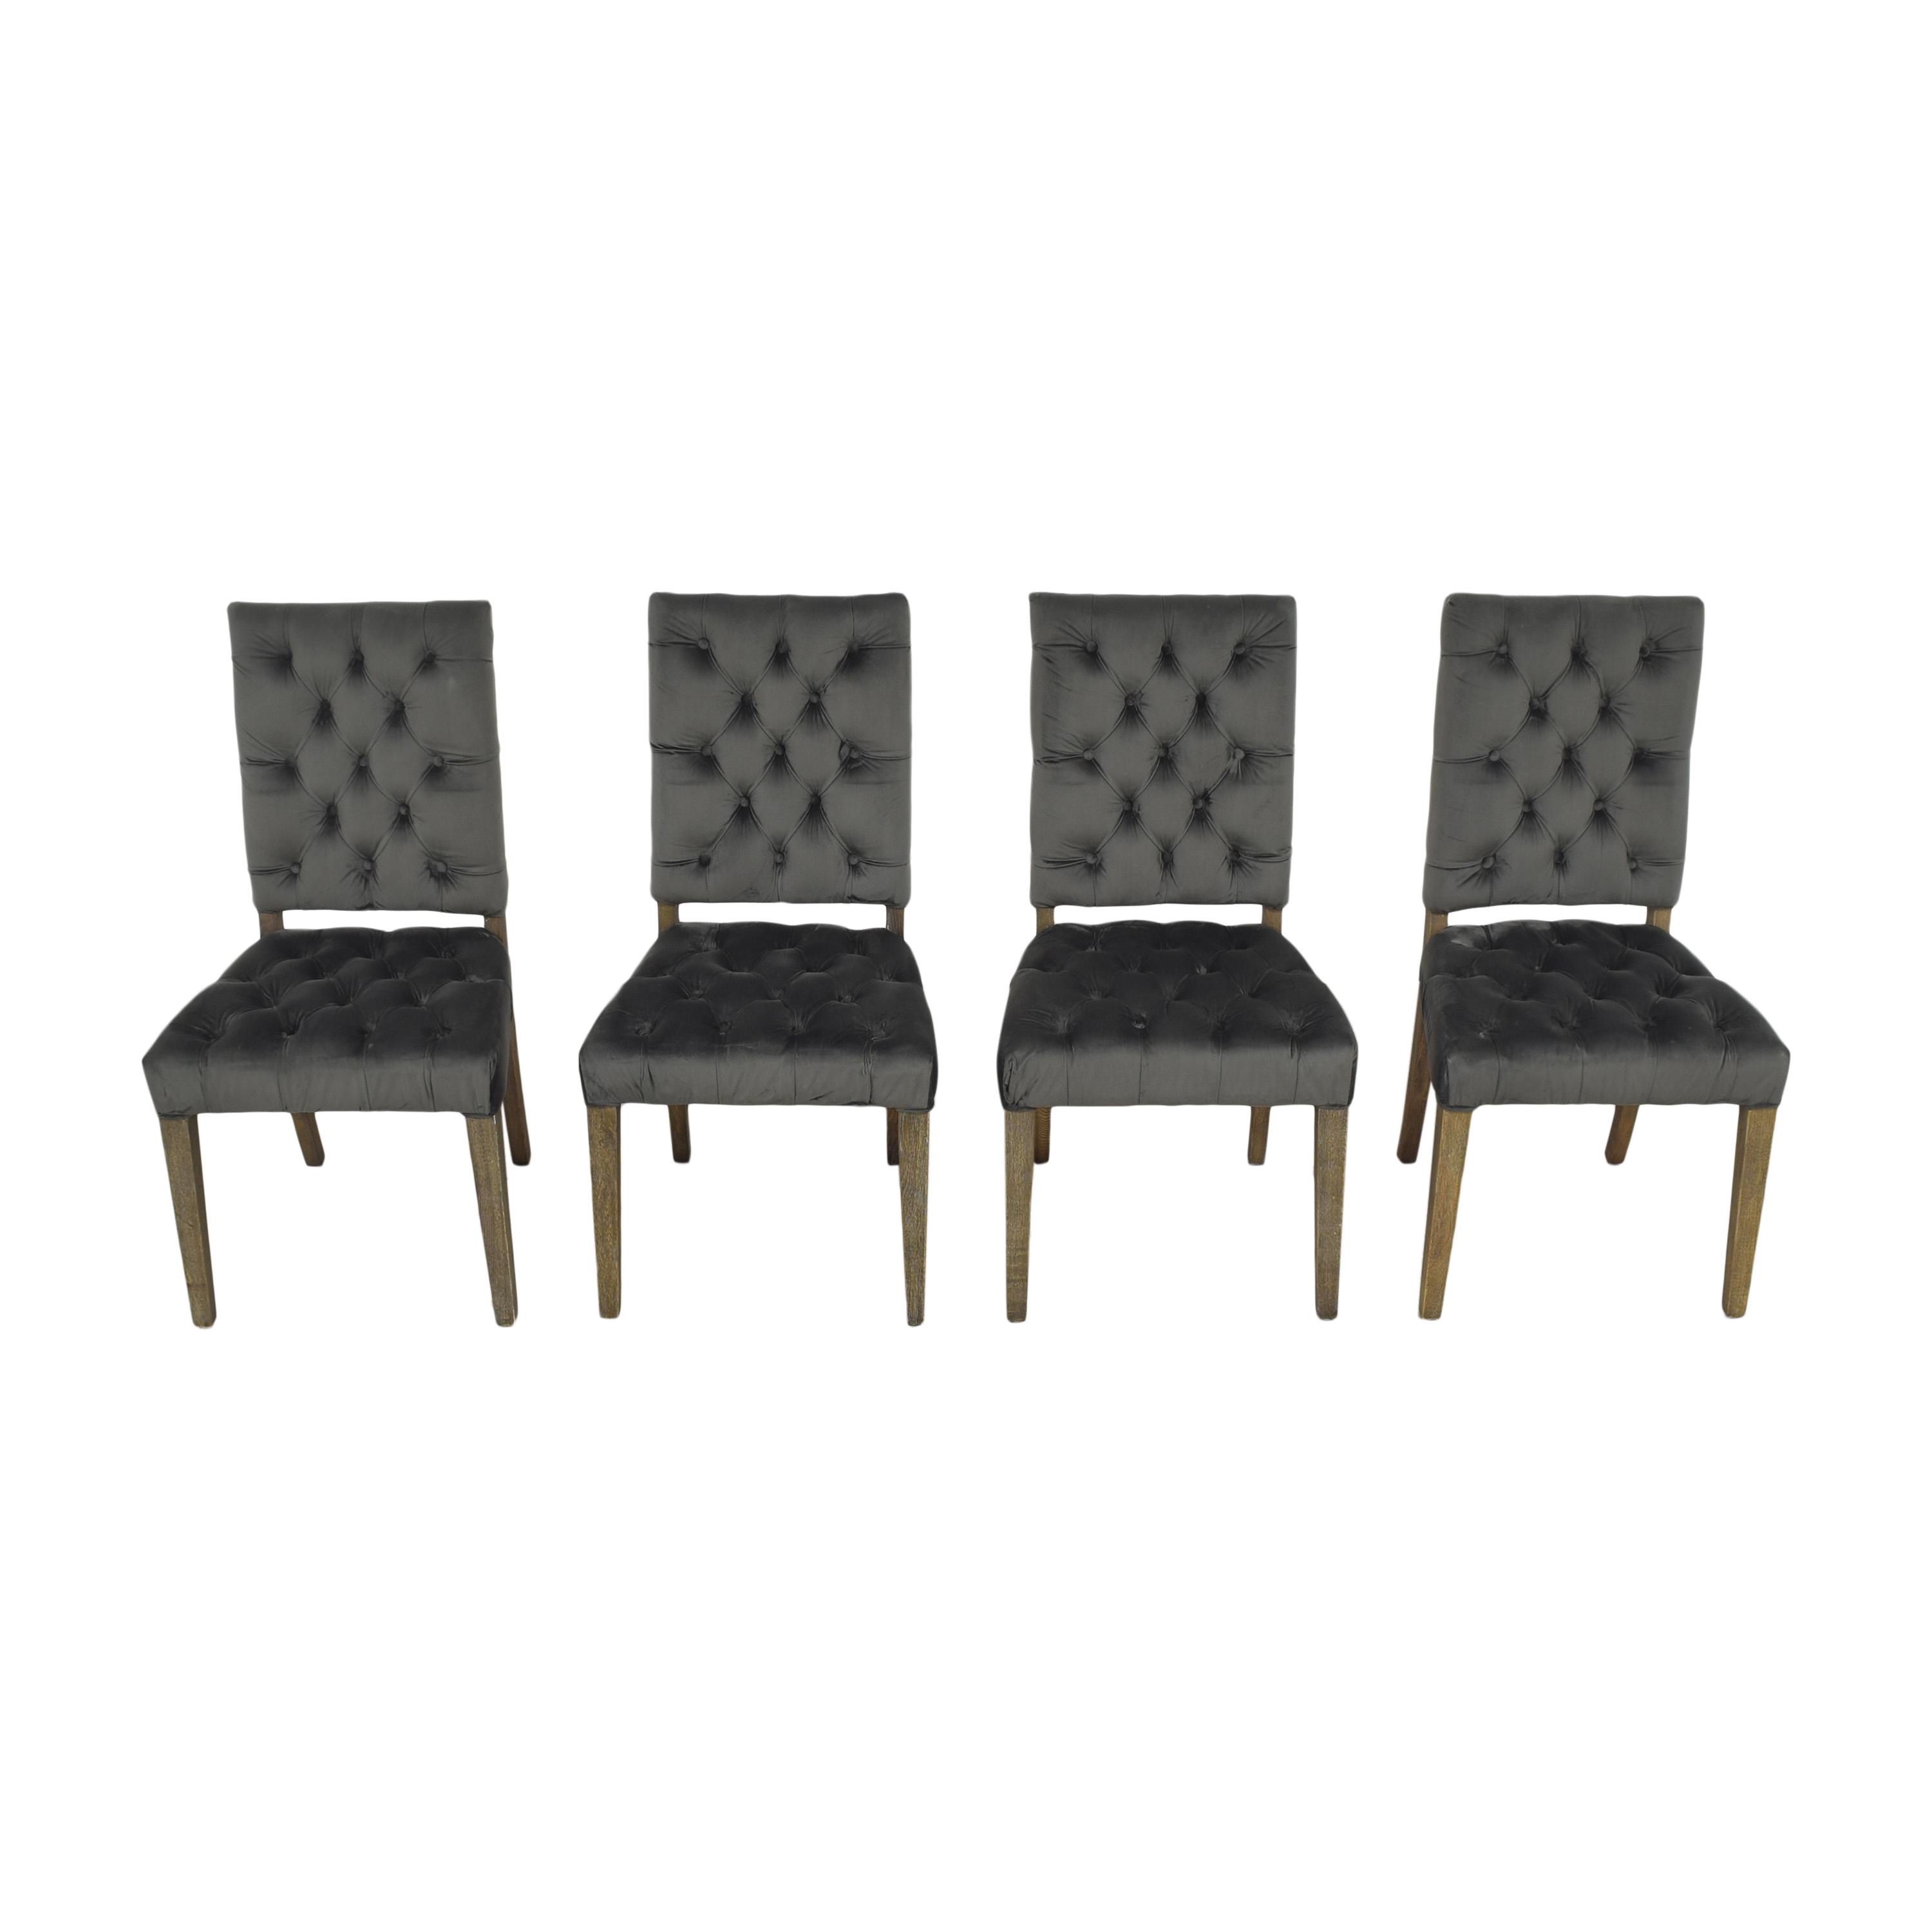 Christopher Knight Saltillo Dining Chairs / Dining Chairs